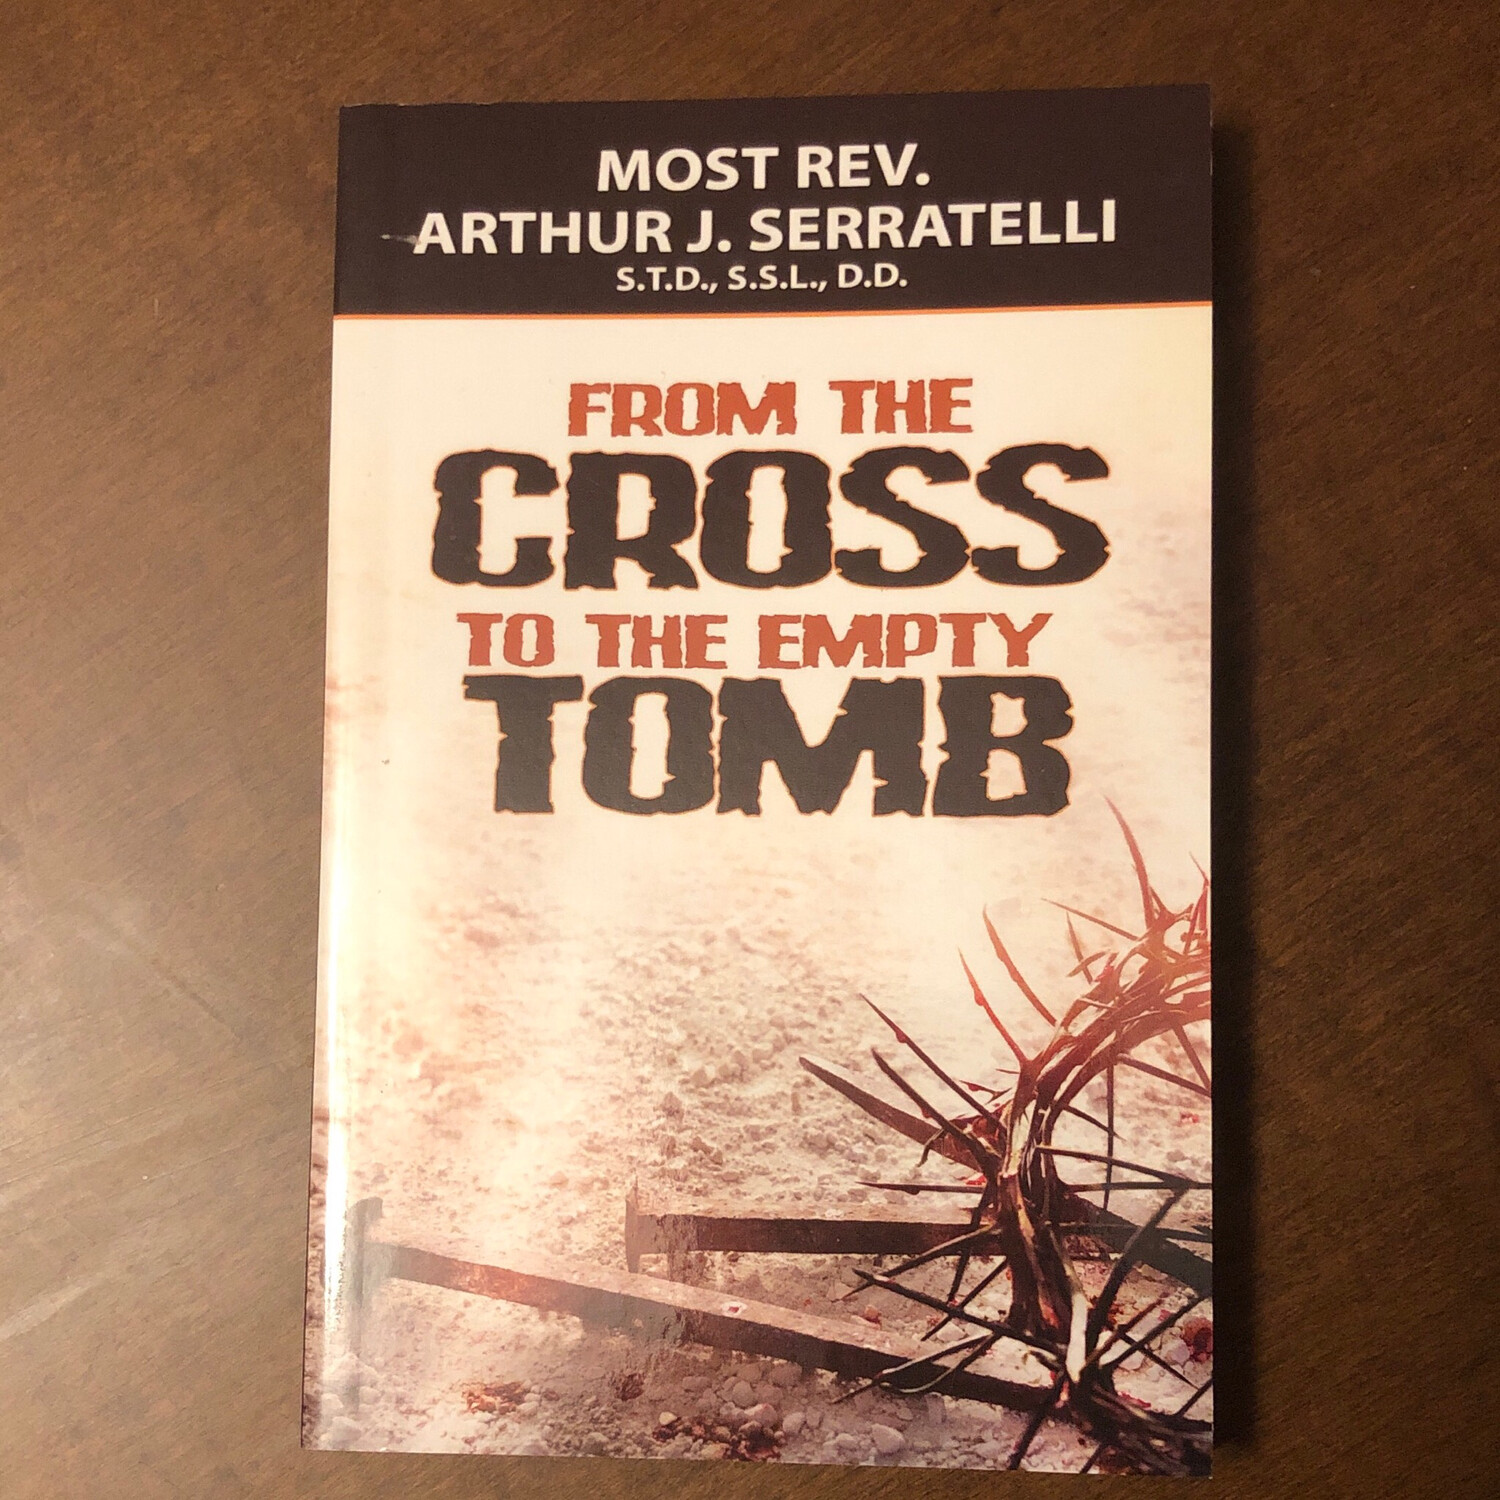 From the Cross to the Empty Tomb by Rev. Arthur J Serratelli